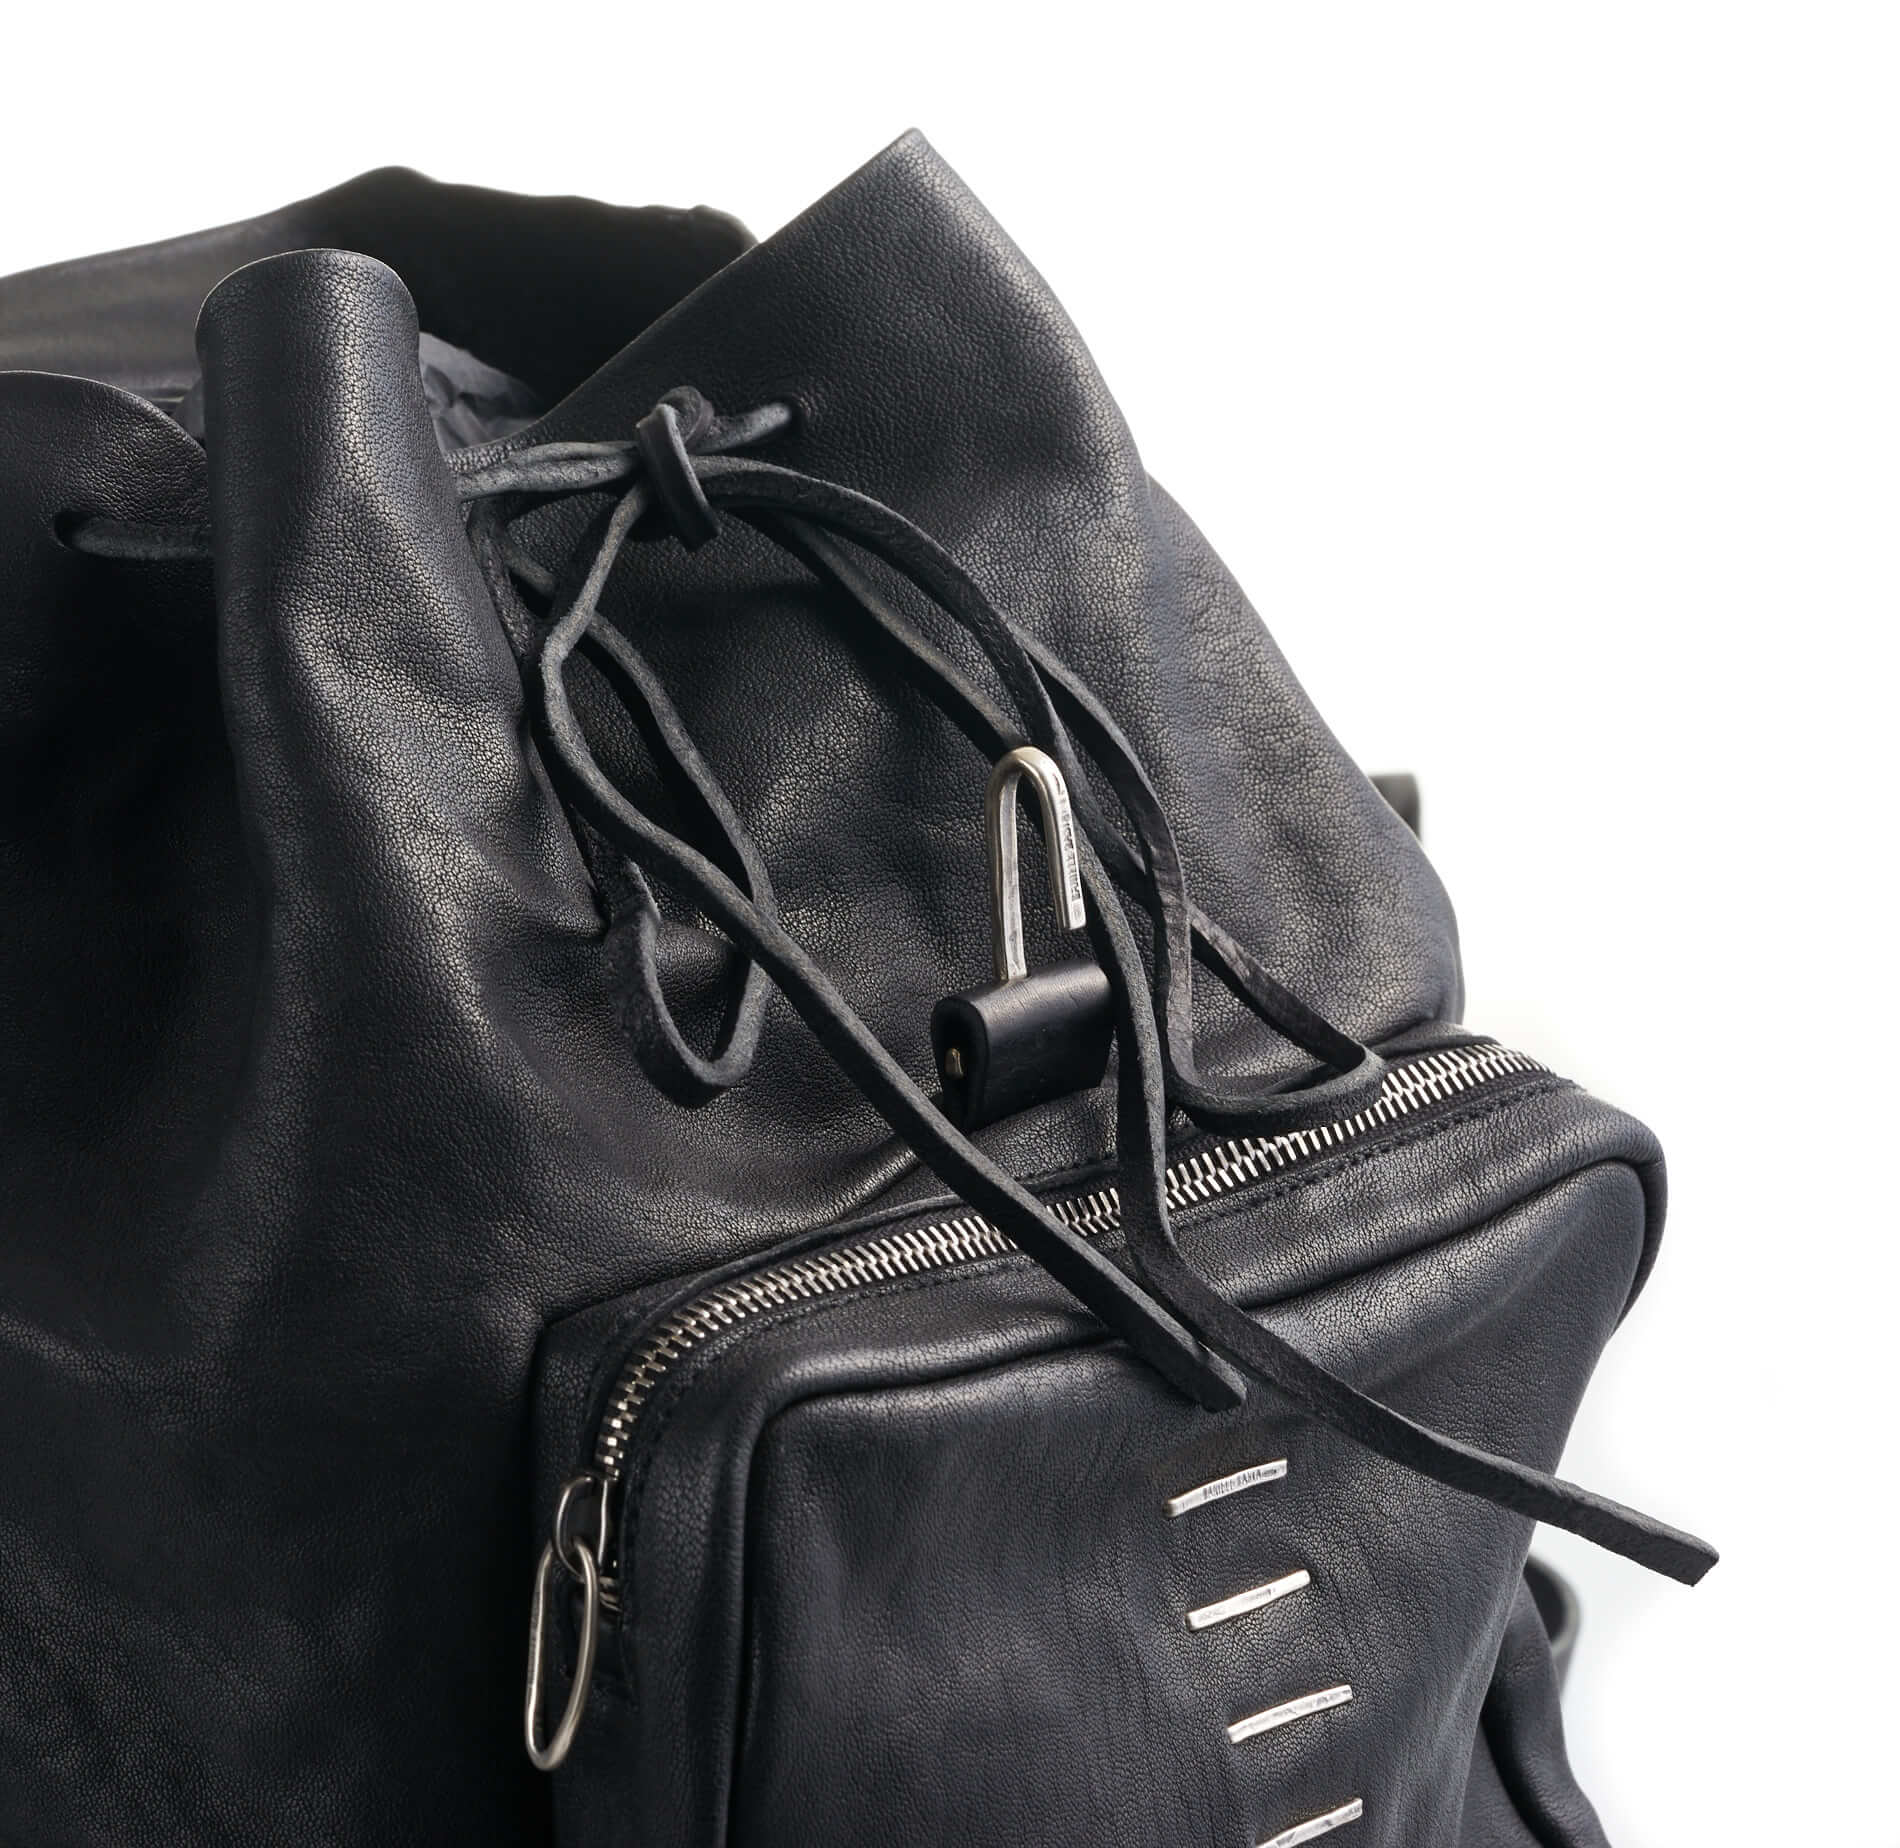 DANIELE BASTA | leather and silver 925 bag - COCCA GRANDE GRAP detail